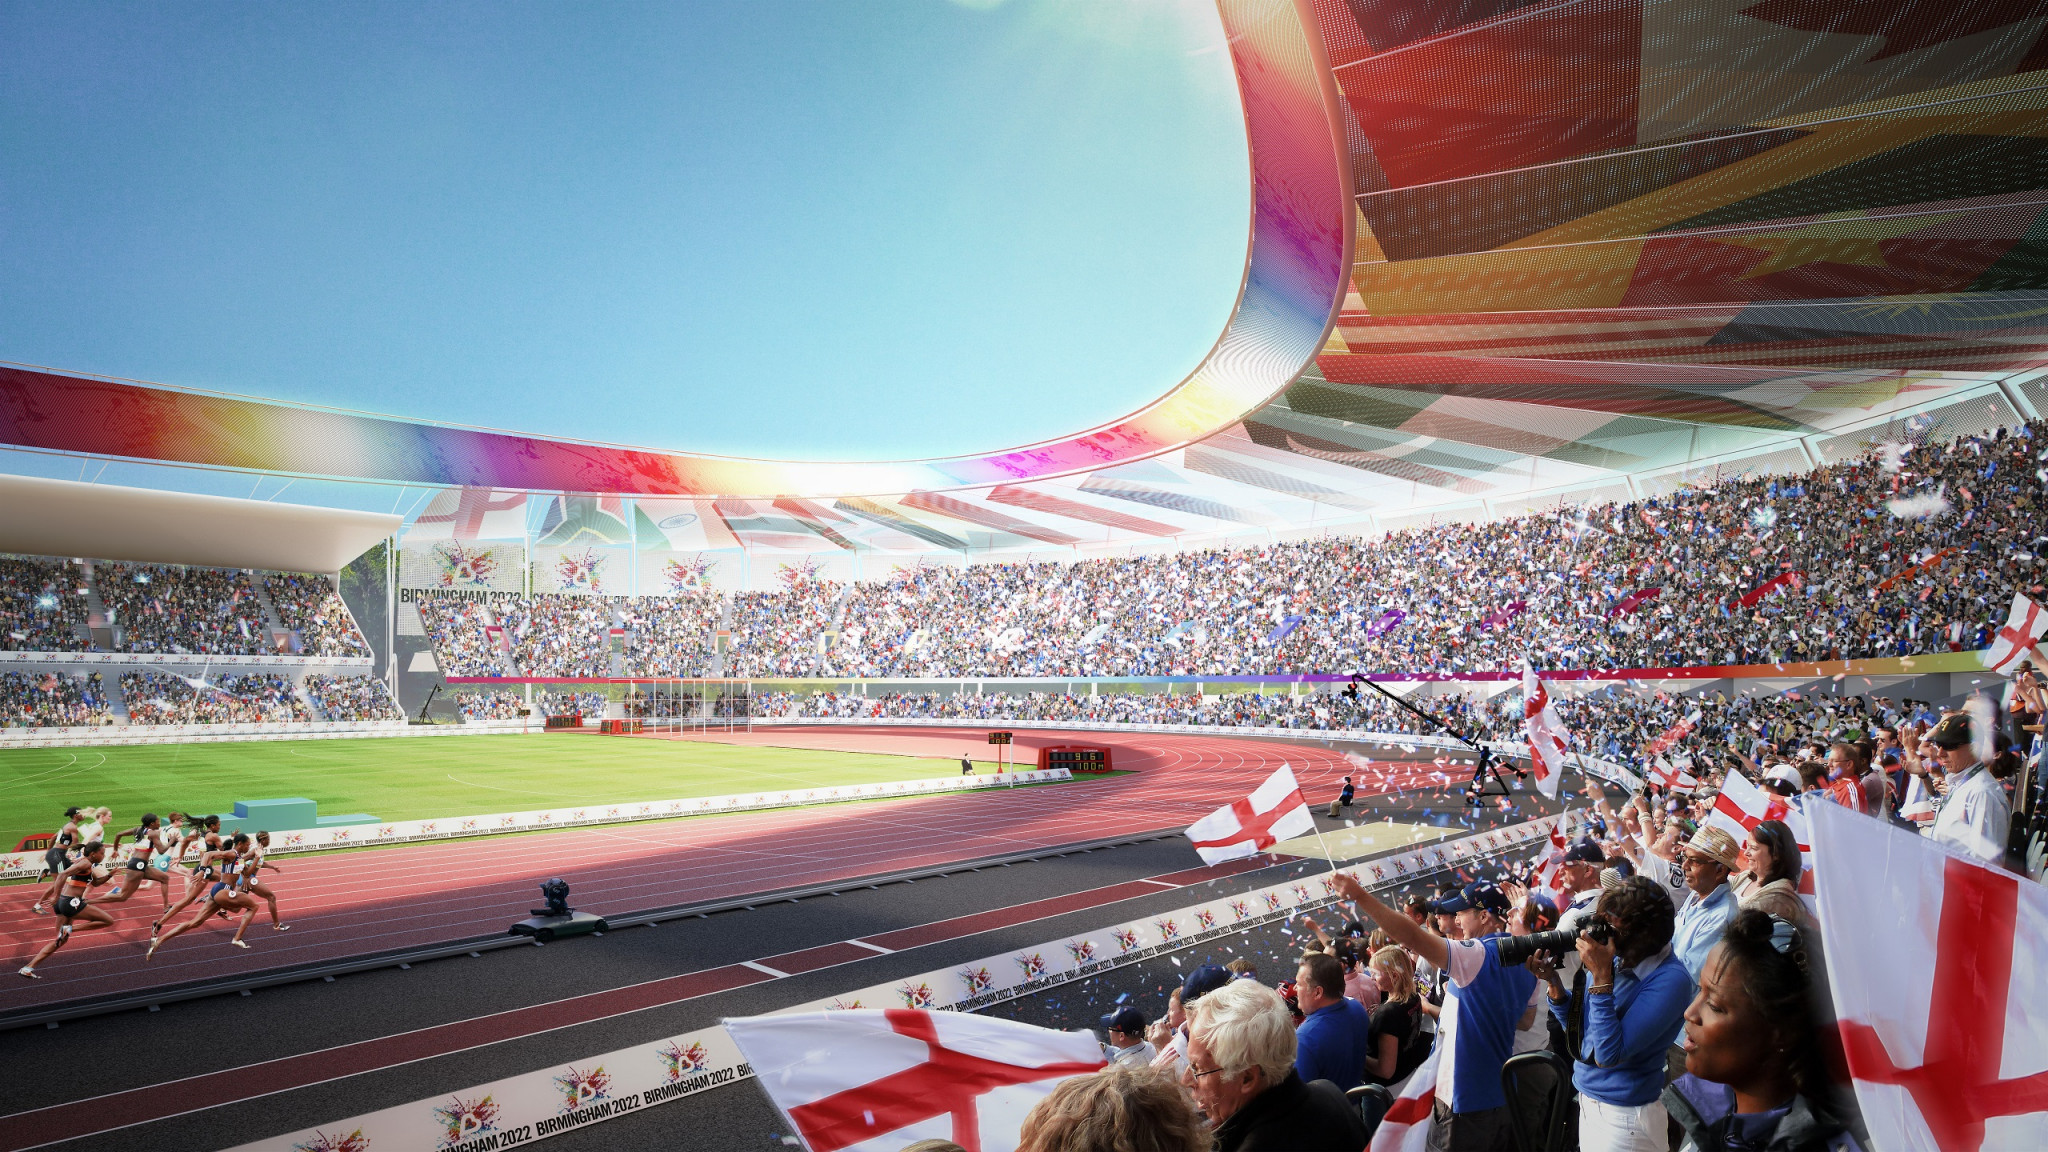 The plan by Birmingham 2022 to pay the real living wage has been welcomed by local workers ©Birmingham 2022